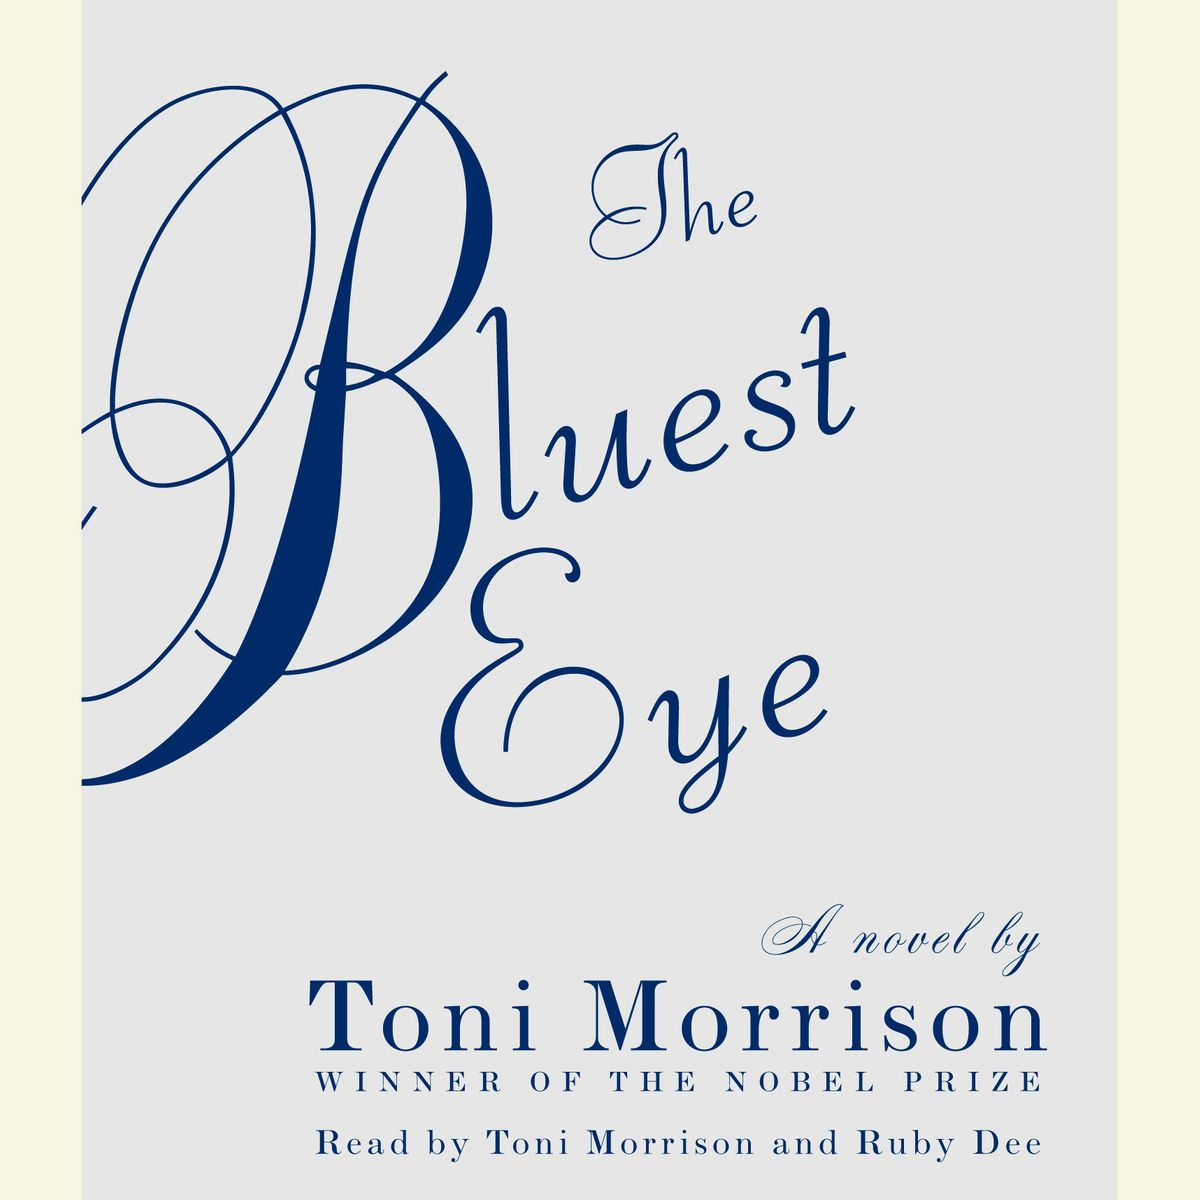 Toni Morrison (The Bluest Eye)